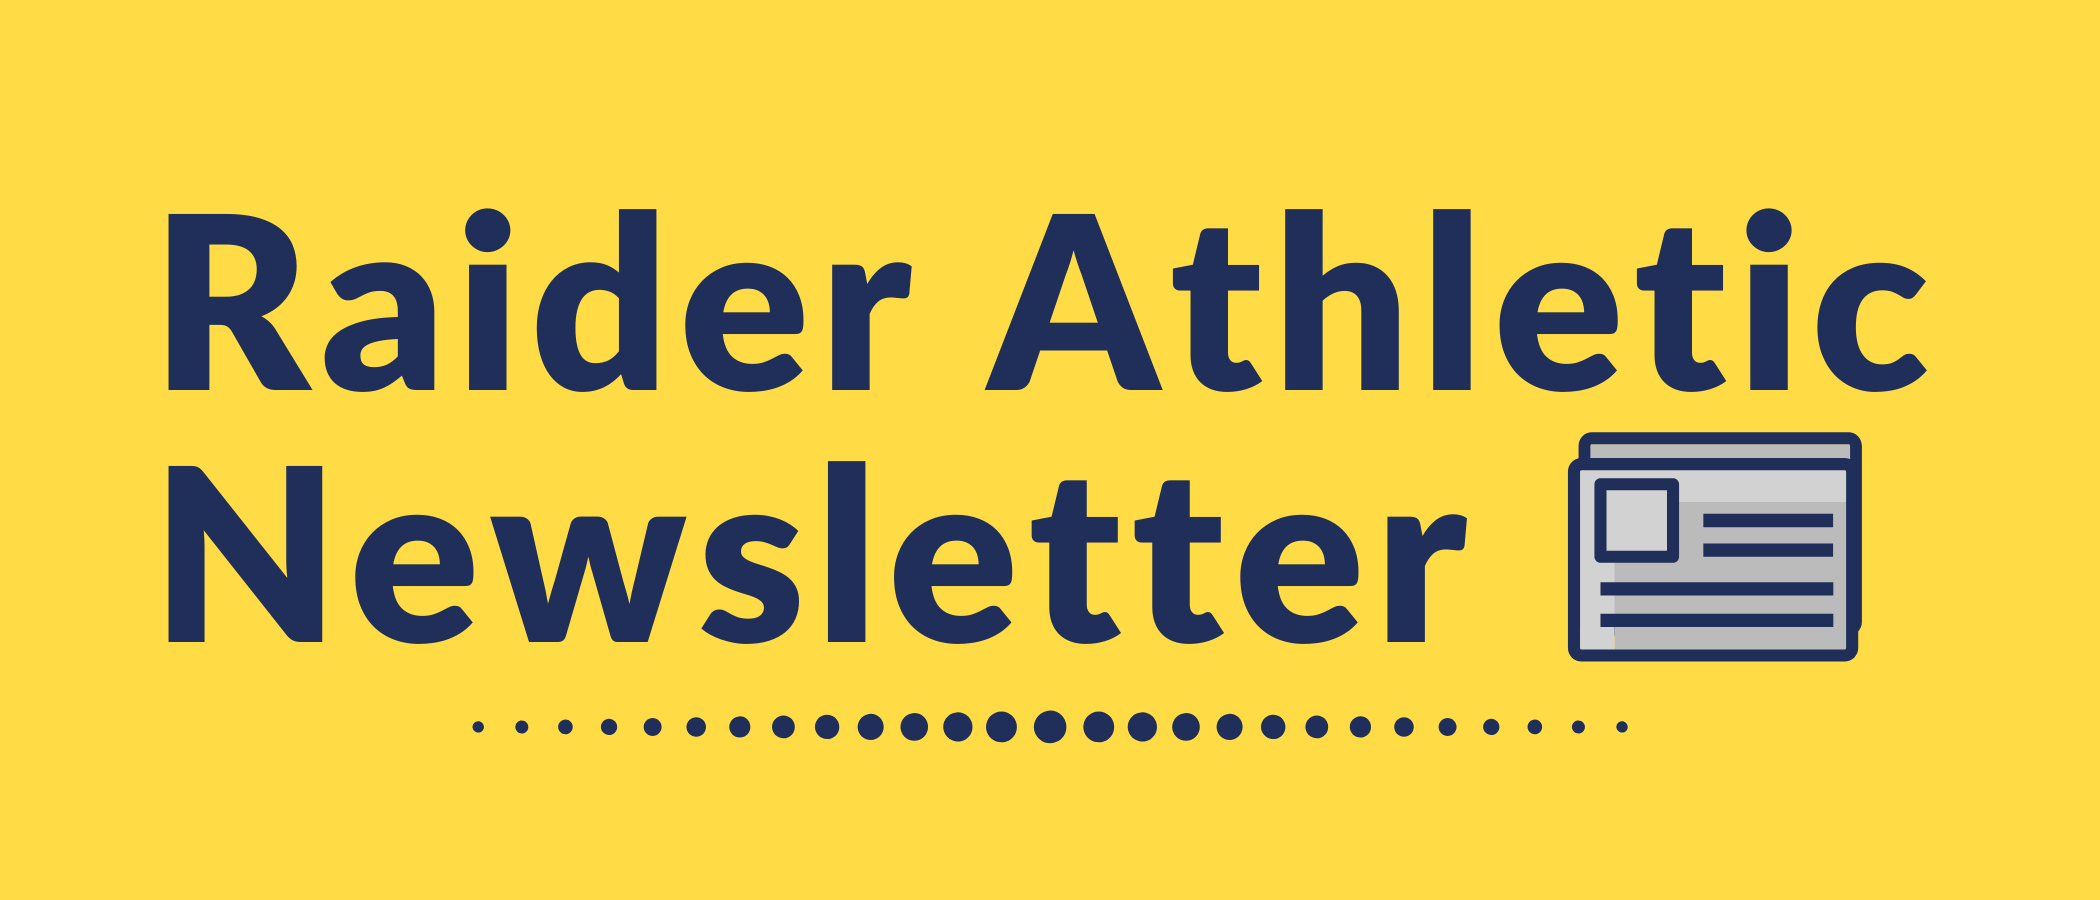 Raider Athletic Newsletter